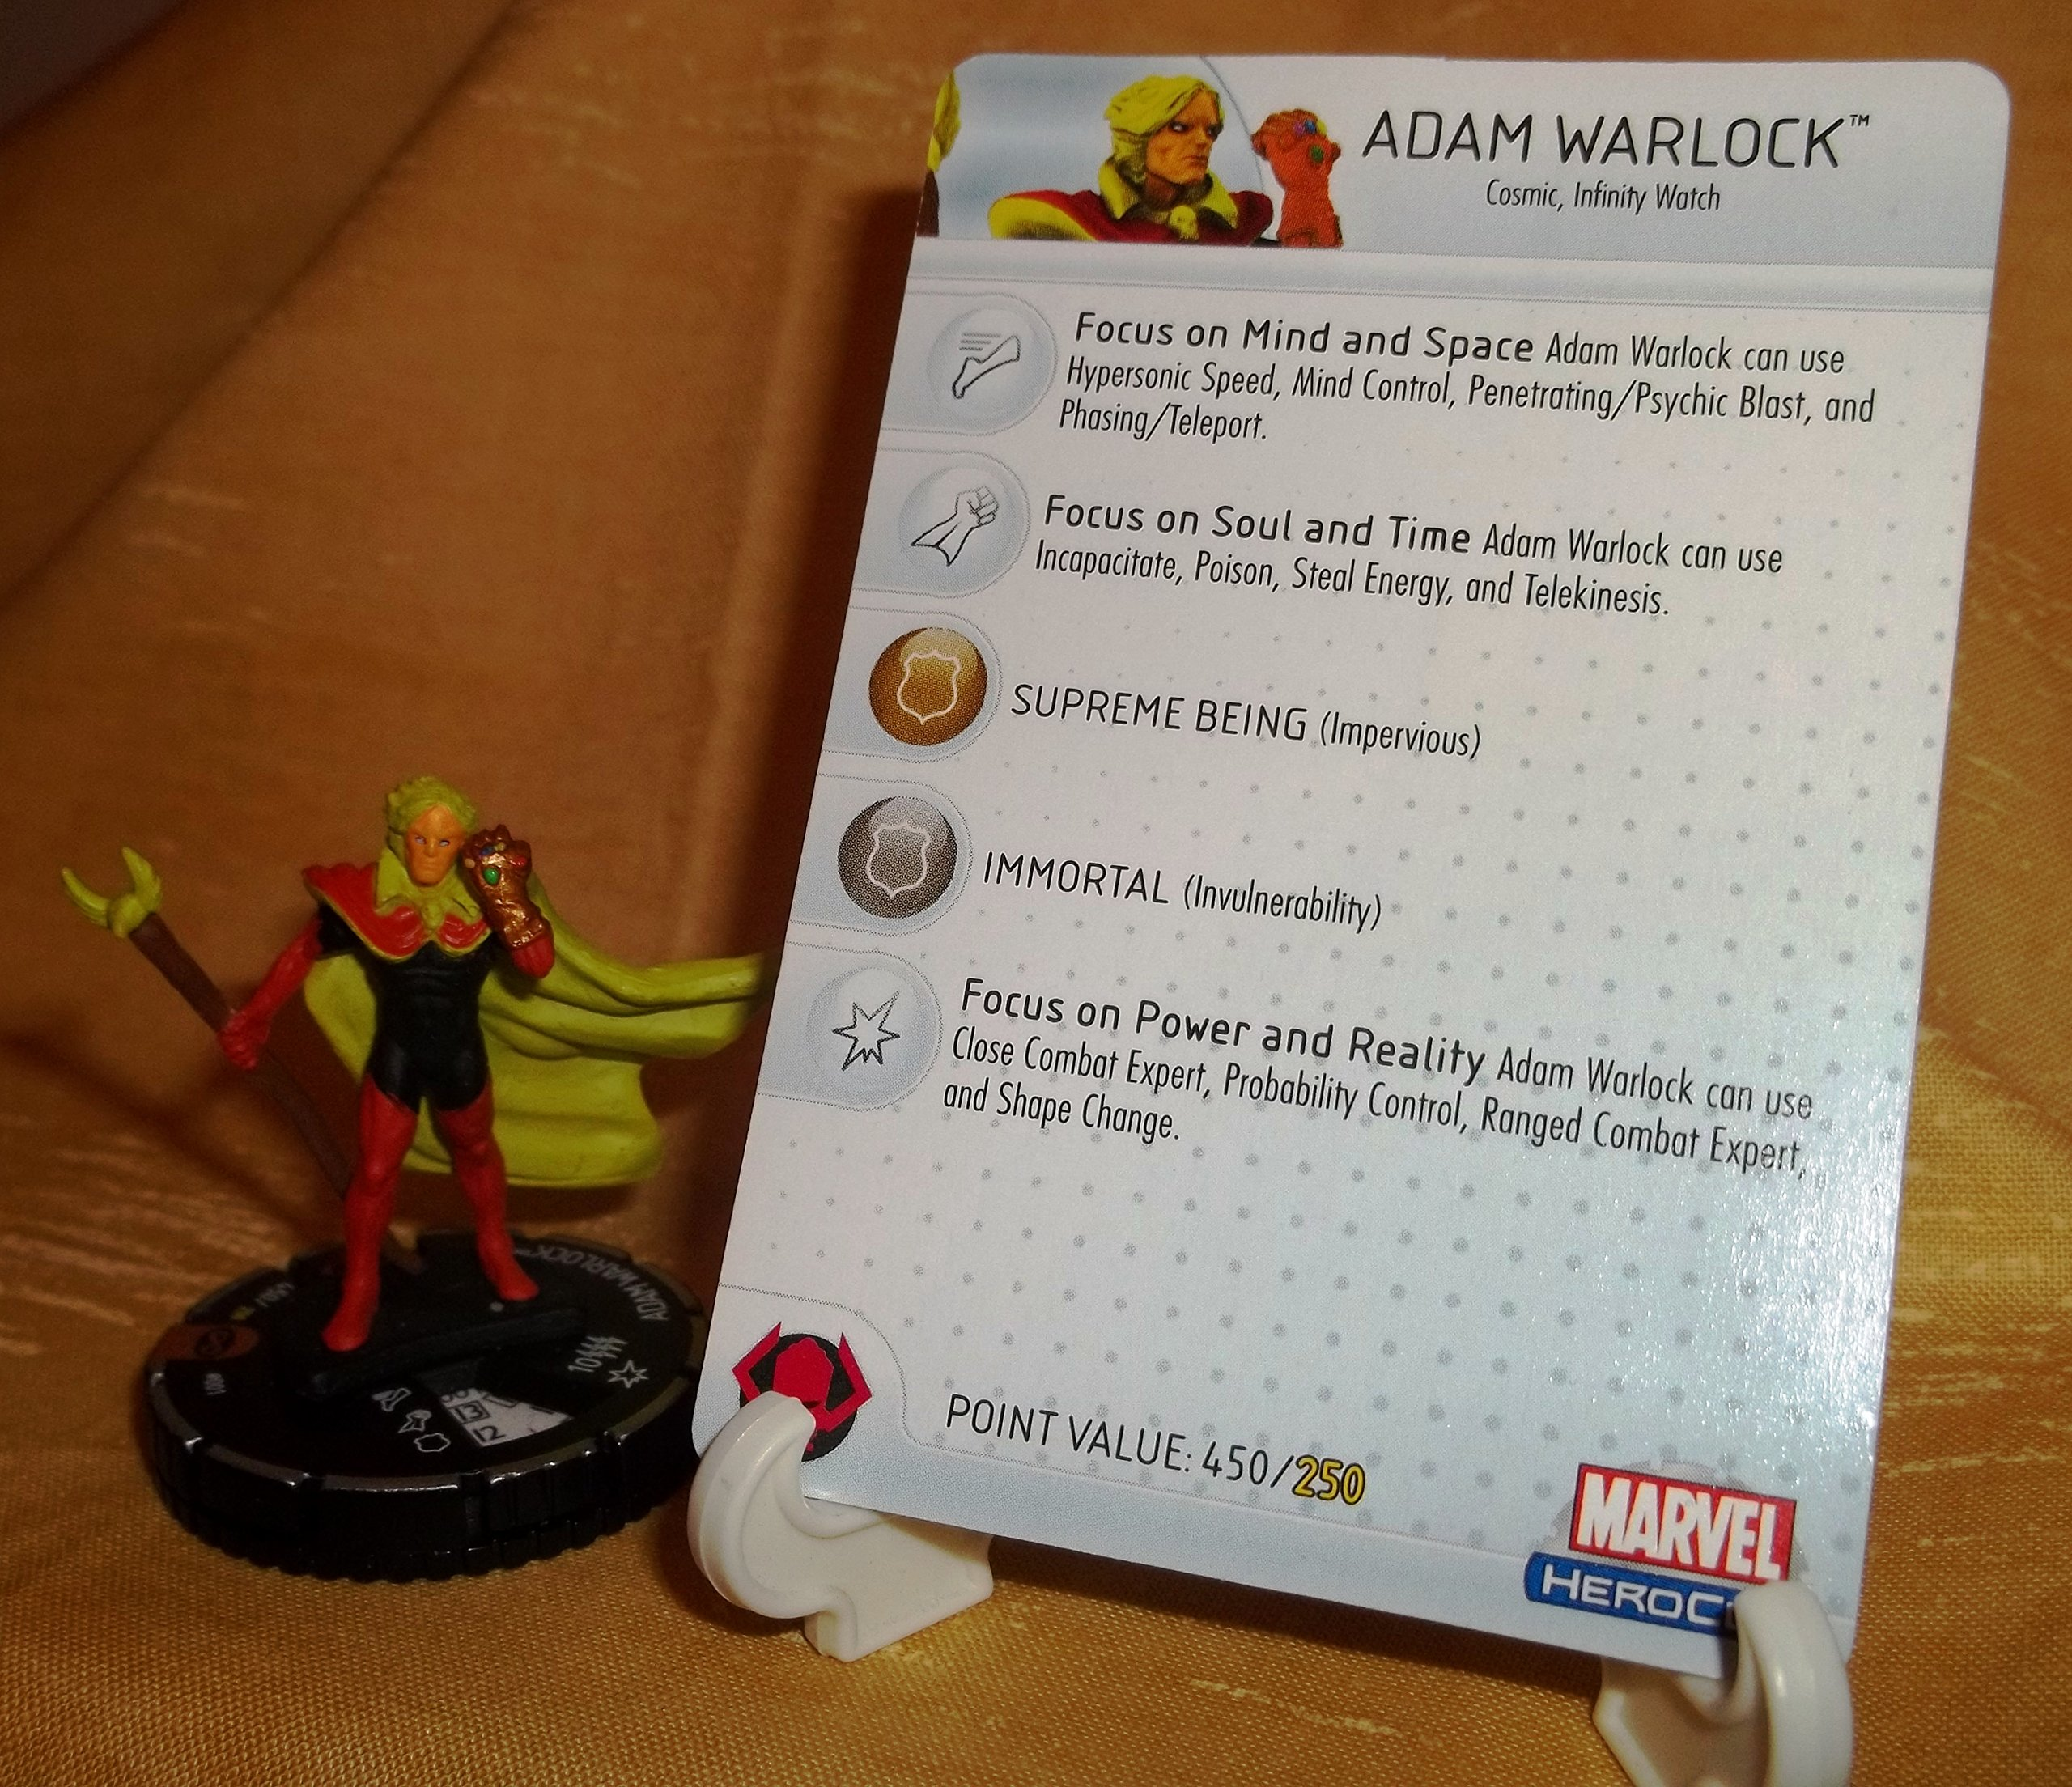 Adam Warlock - Marvel - Infinity Gauntlet HeroClix #001 - Limited Edition